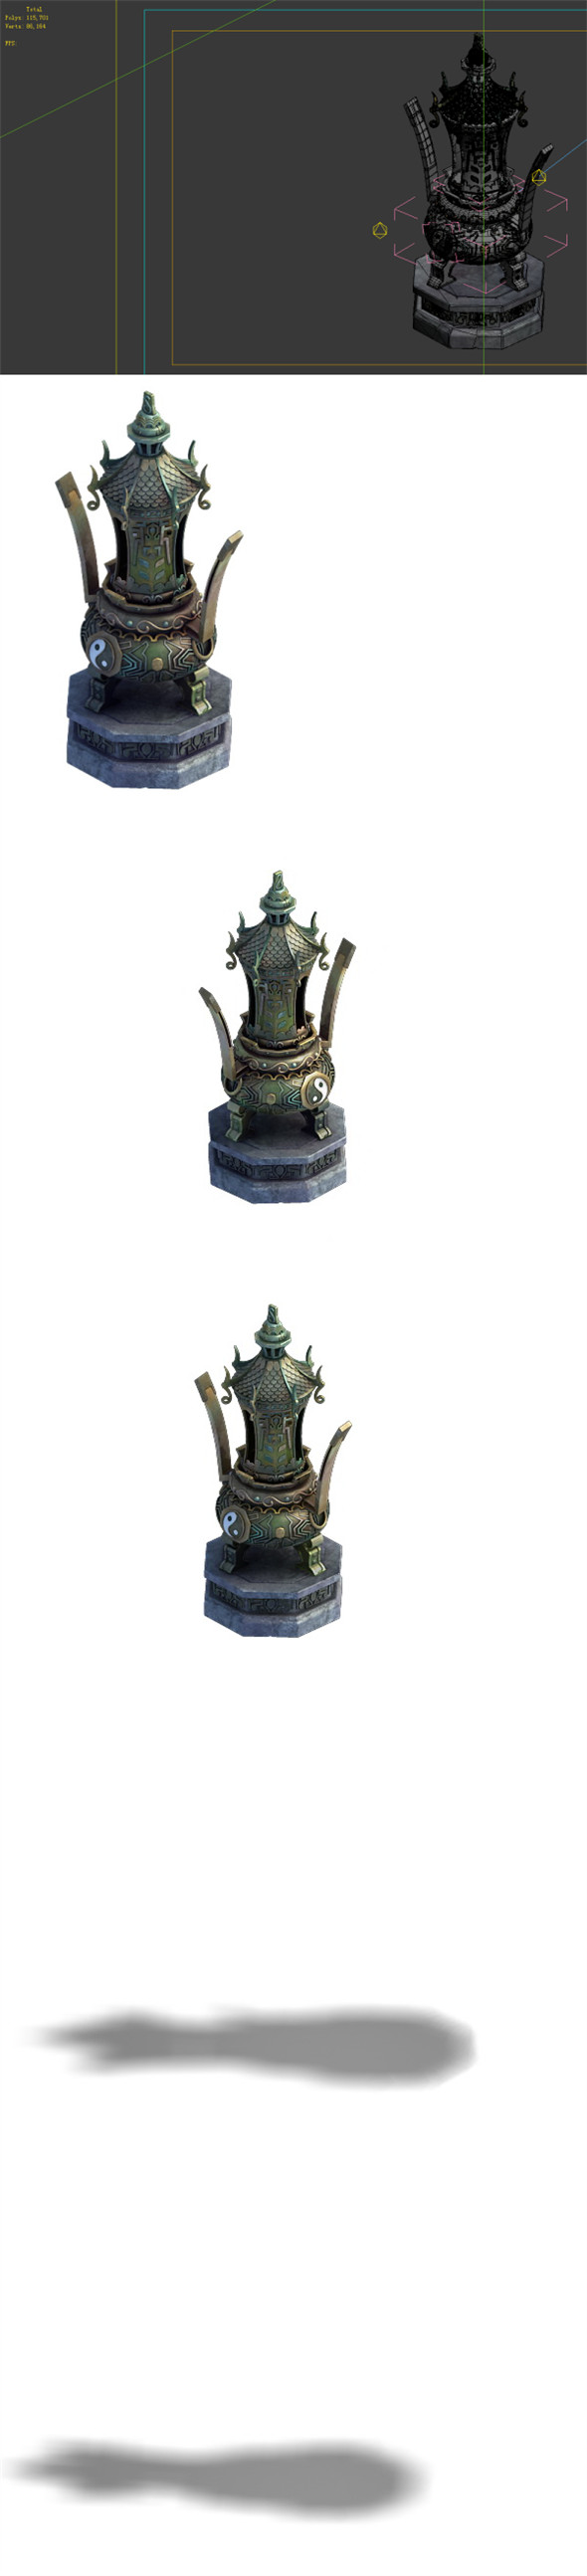 3DOcean Game Model Taoist comprehension scene incense burner stove large decorative stove 01 19836996